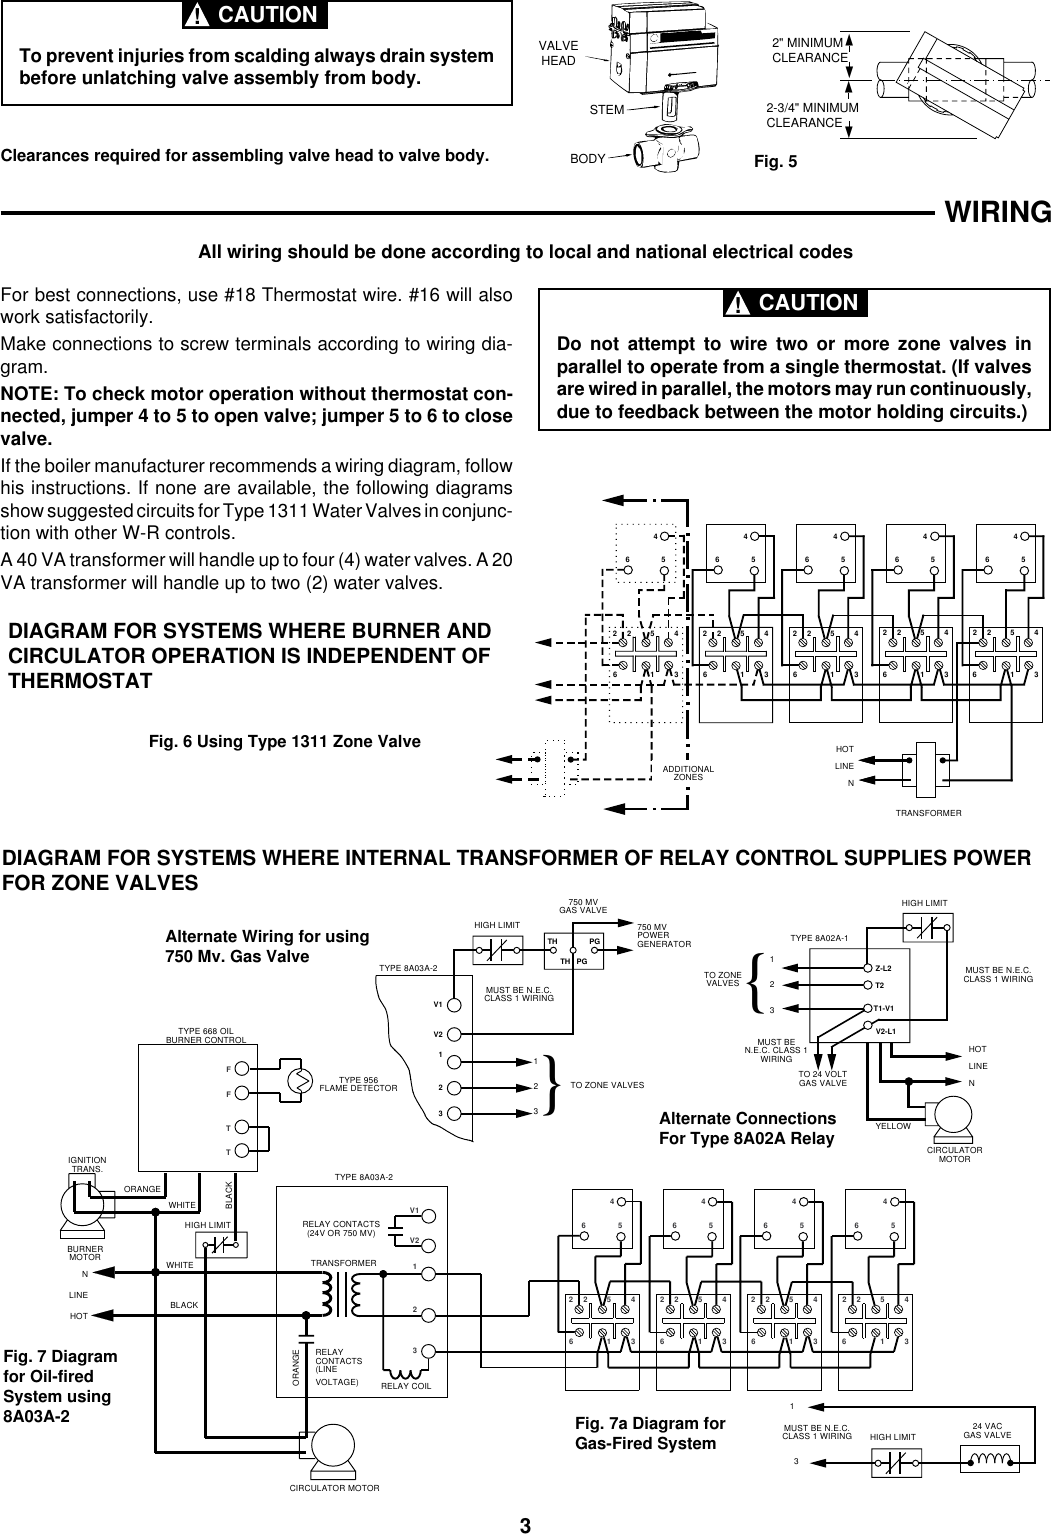 White Rodgers Wiring Diagram from static-resources.imageservice.cloud